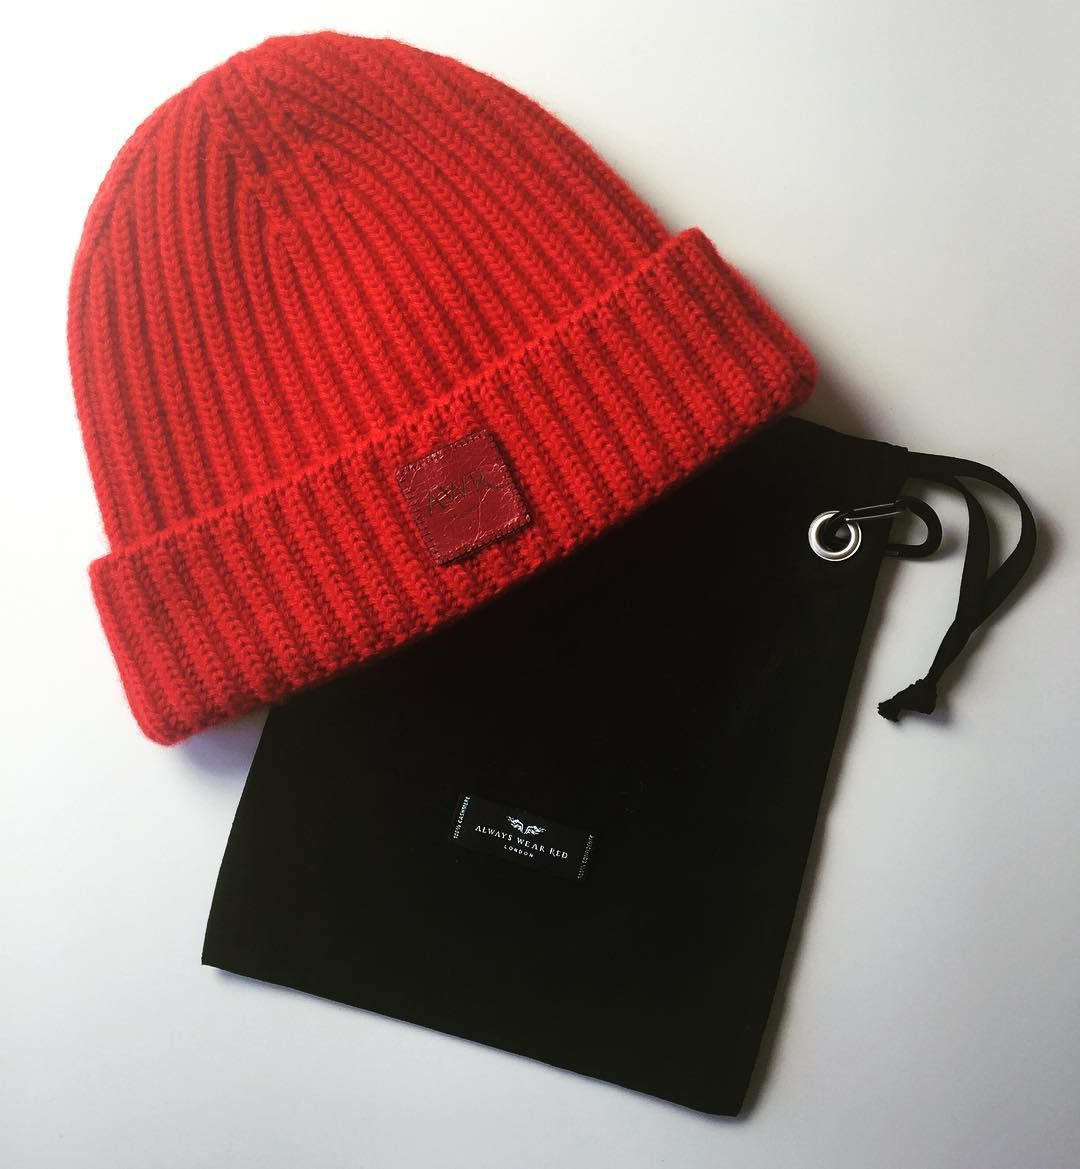 AWR Luxury Streetstyle. CONFIDENCE IS A COLOUR® TOAST #beanie #hat comes with its own black branded belt-bag and branded AWR carabina clip. So now you can take your beanie everywhere! Knitted in Scotland from the world's very best 100% Pure Cashmere. In British Red. Leather labelling. AWR – 11 new pieces added at our online store www.alwayswearred.com during June 2016.  CONFIDENCE IS A COLOUR® |  IF YOU LOVE IT TODAY, WEAR IT TODAY |  DEMAND ONLY THE BEST Free PRODUCT ALERTS available NOW…